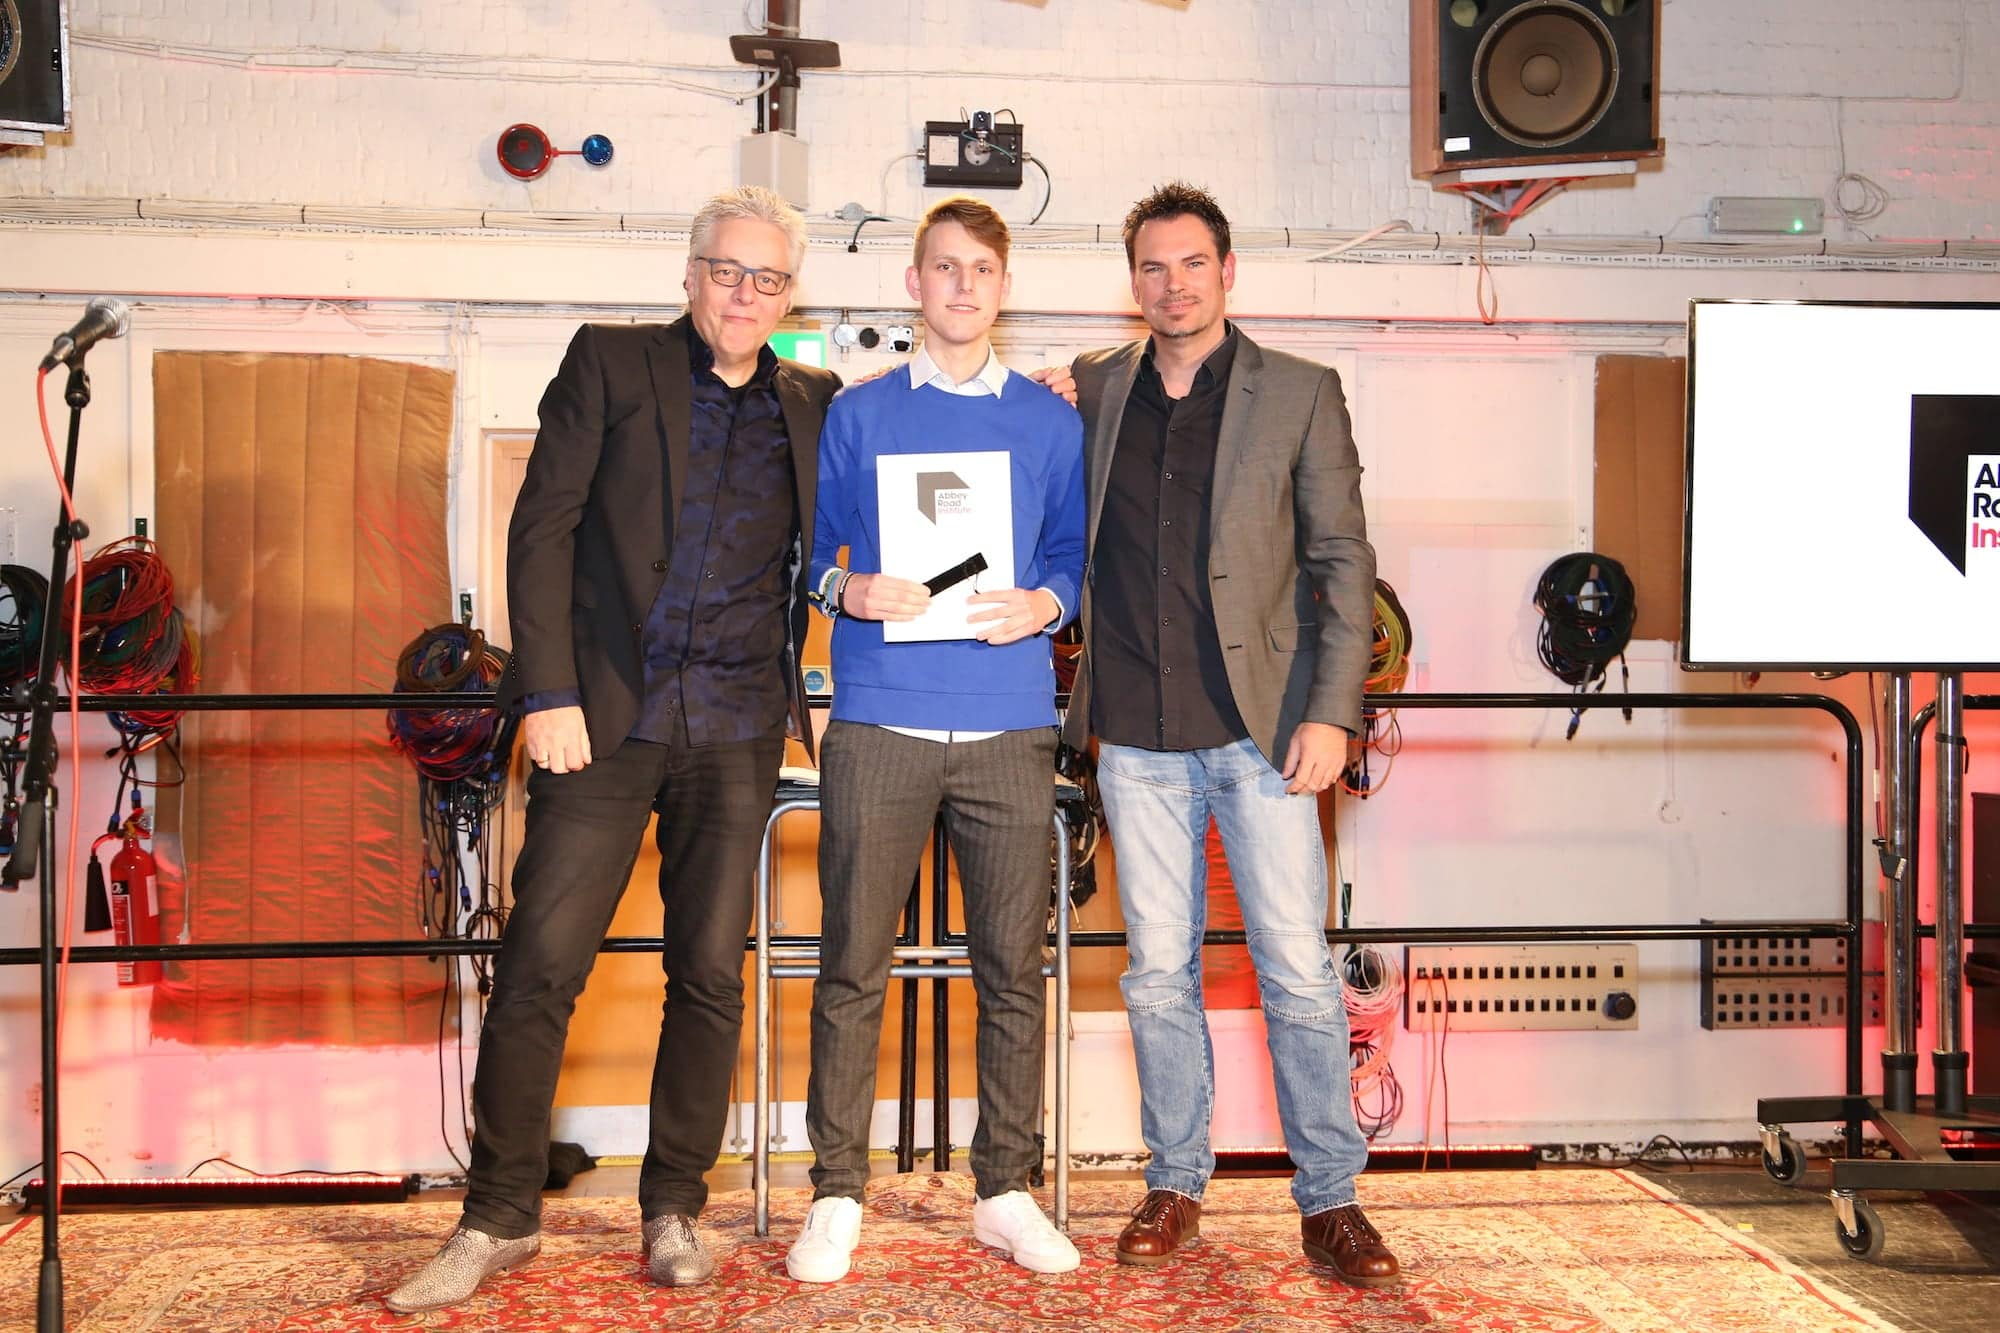 student receiving his diploma at abbey road studios